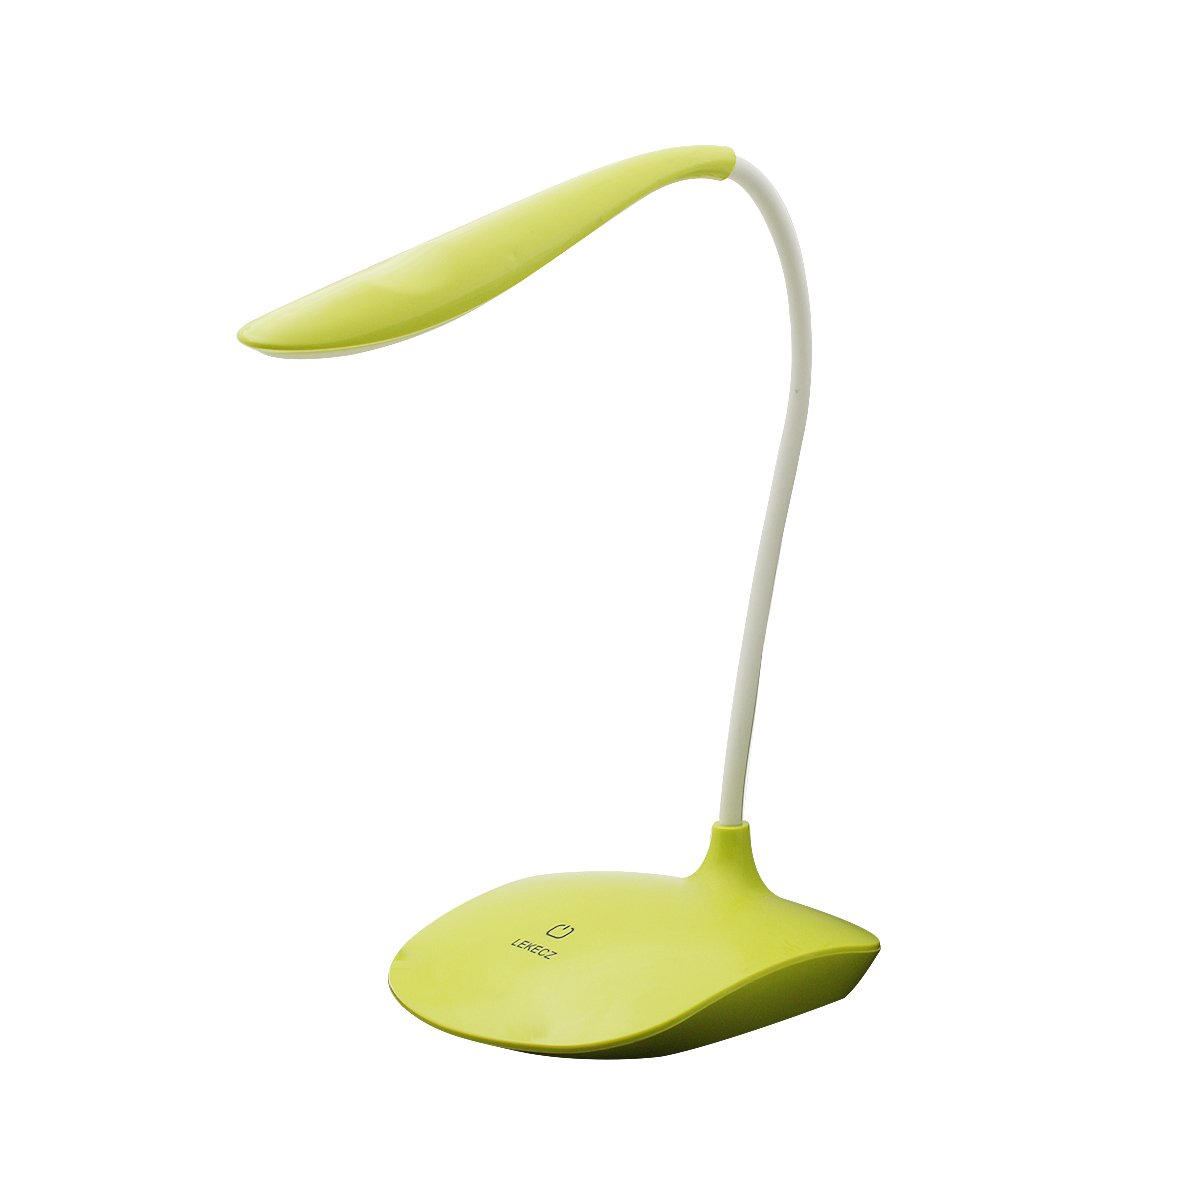 LED Desk Lamp,AUSACO Eye-Care Dimmable Table Lamp with 3 Level Dimmer Touch Control Modern USB Port Rechargeable Reading Lamp Adjustable Gooseneck Book Light for College Students Kids-Green